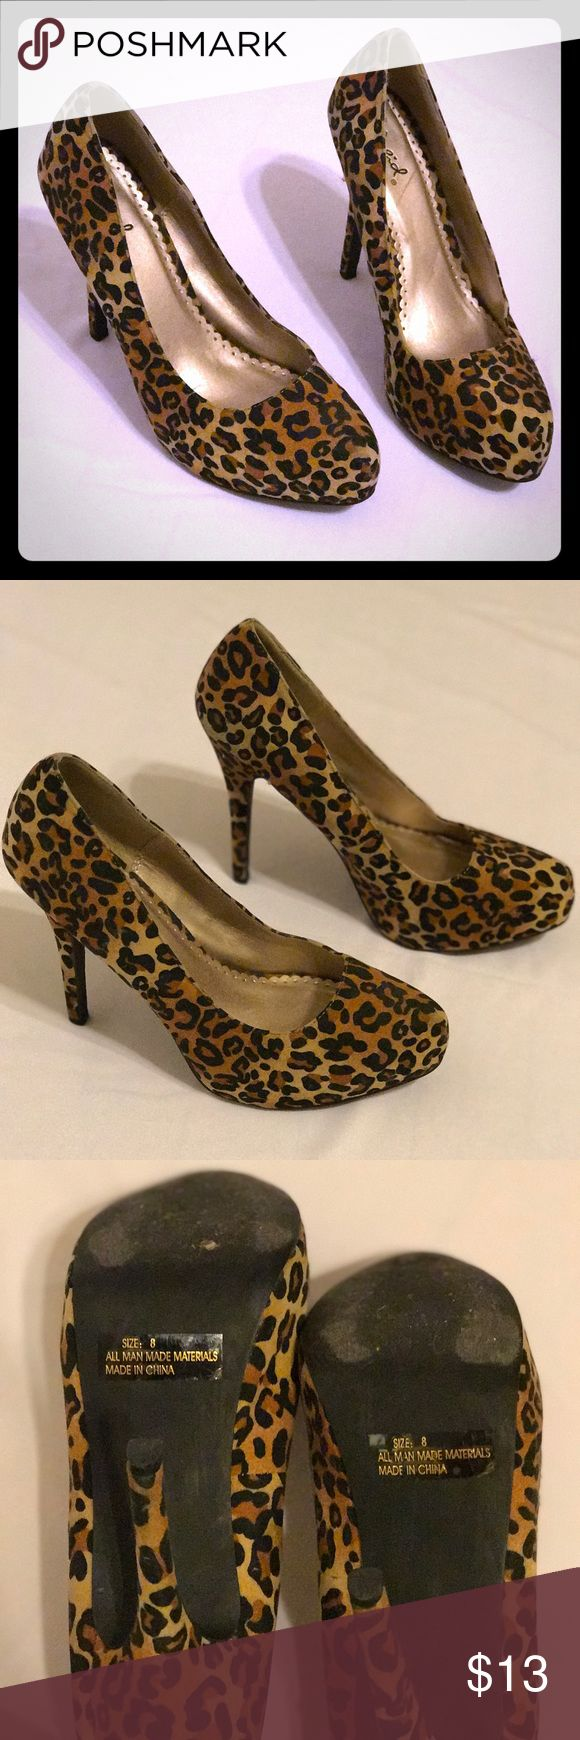 "Leopard Heels size 8 These leopard heels have only been worn once. They are in good condition and have a 5"" heel. No trades or pay pal. Shoes Heels"